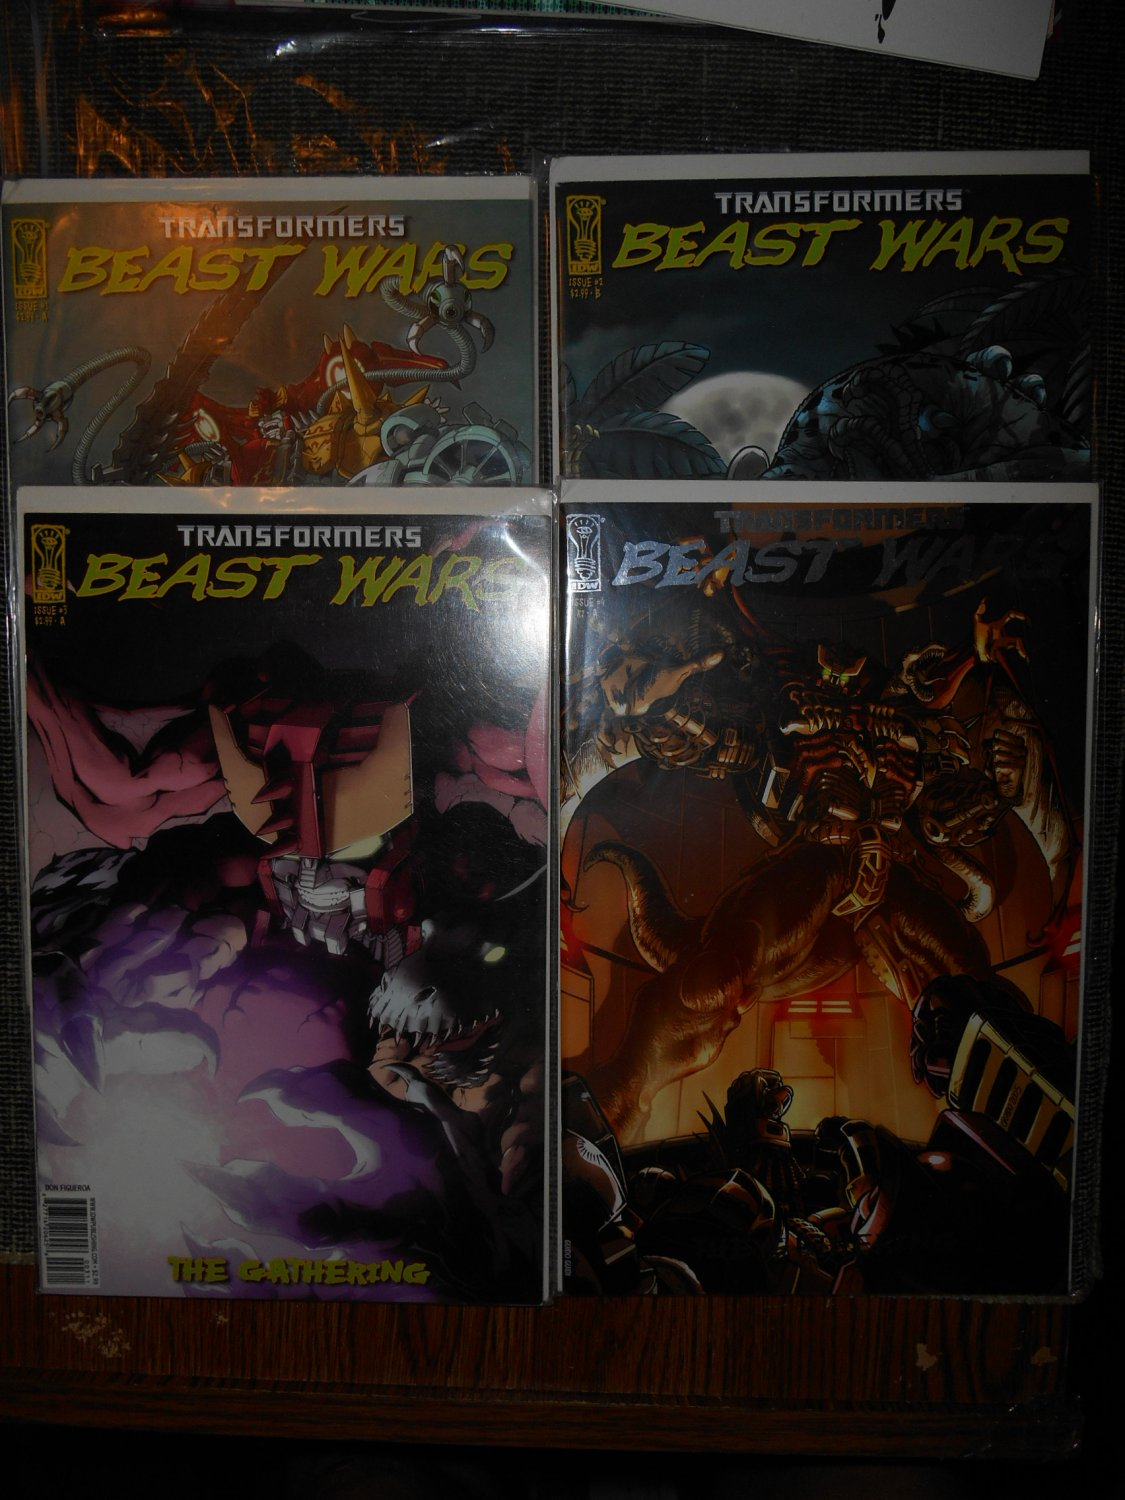 2006 Transformers Comic - Beast Wars The Gathering - Incentive - Complete Series - Fine -